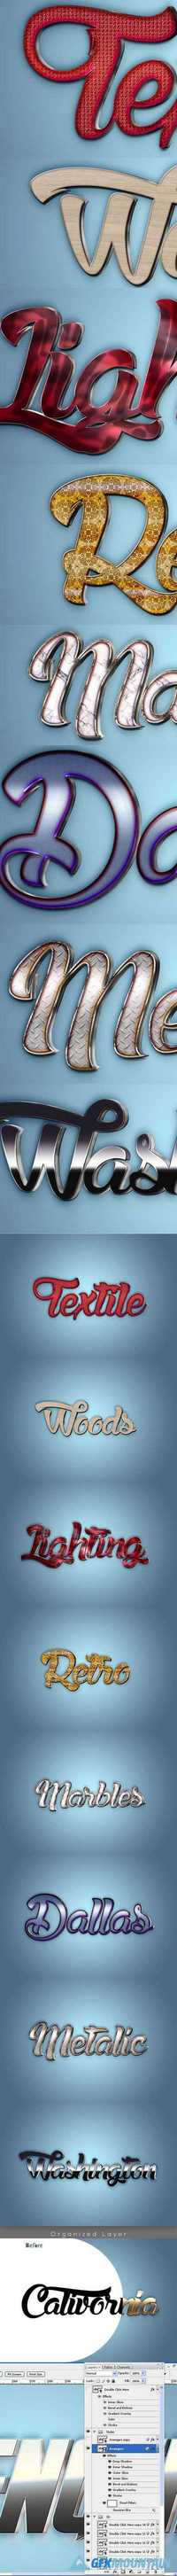 Graphicriver - 3D Text Styles V22-08-16B 19381033